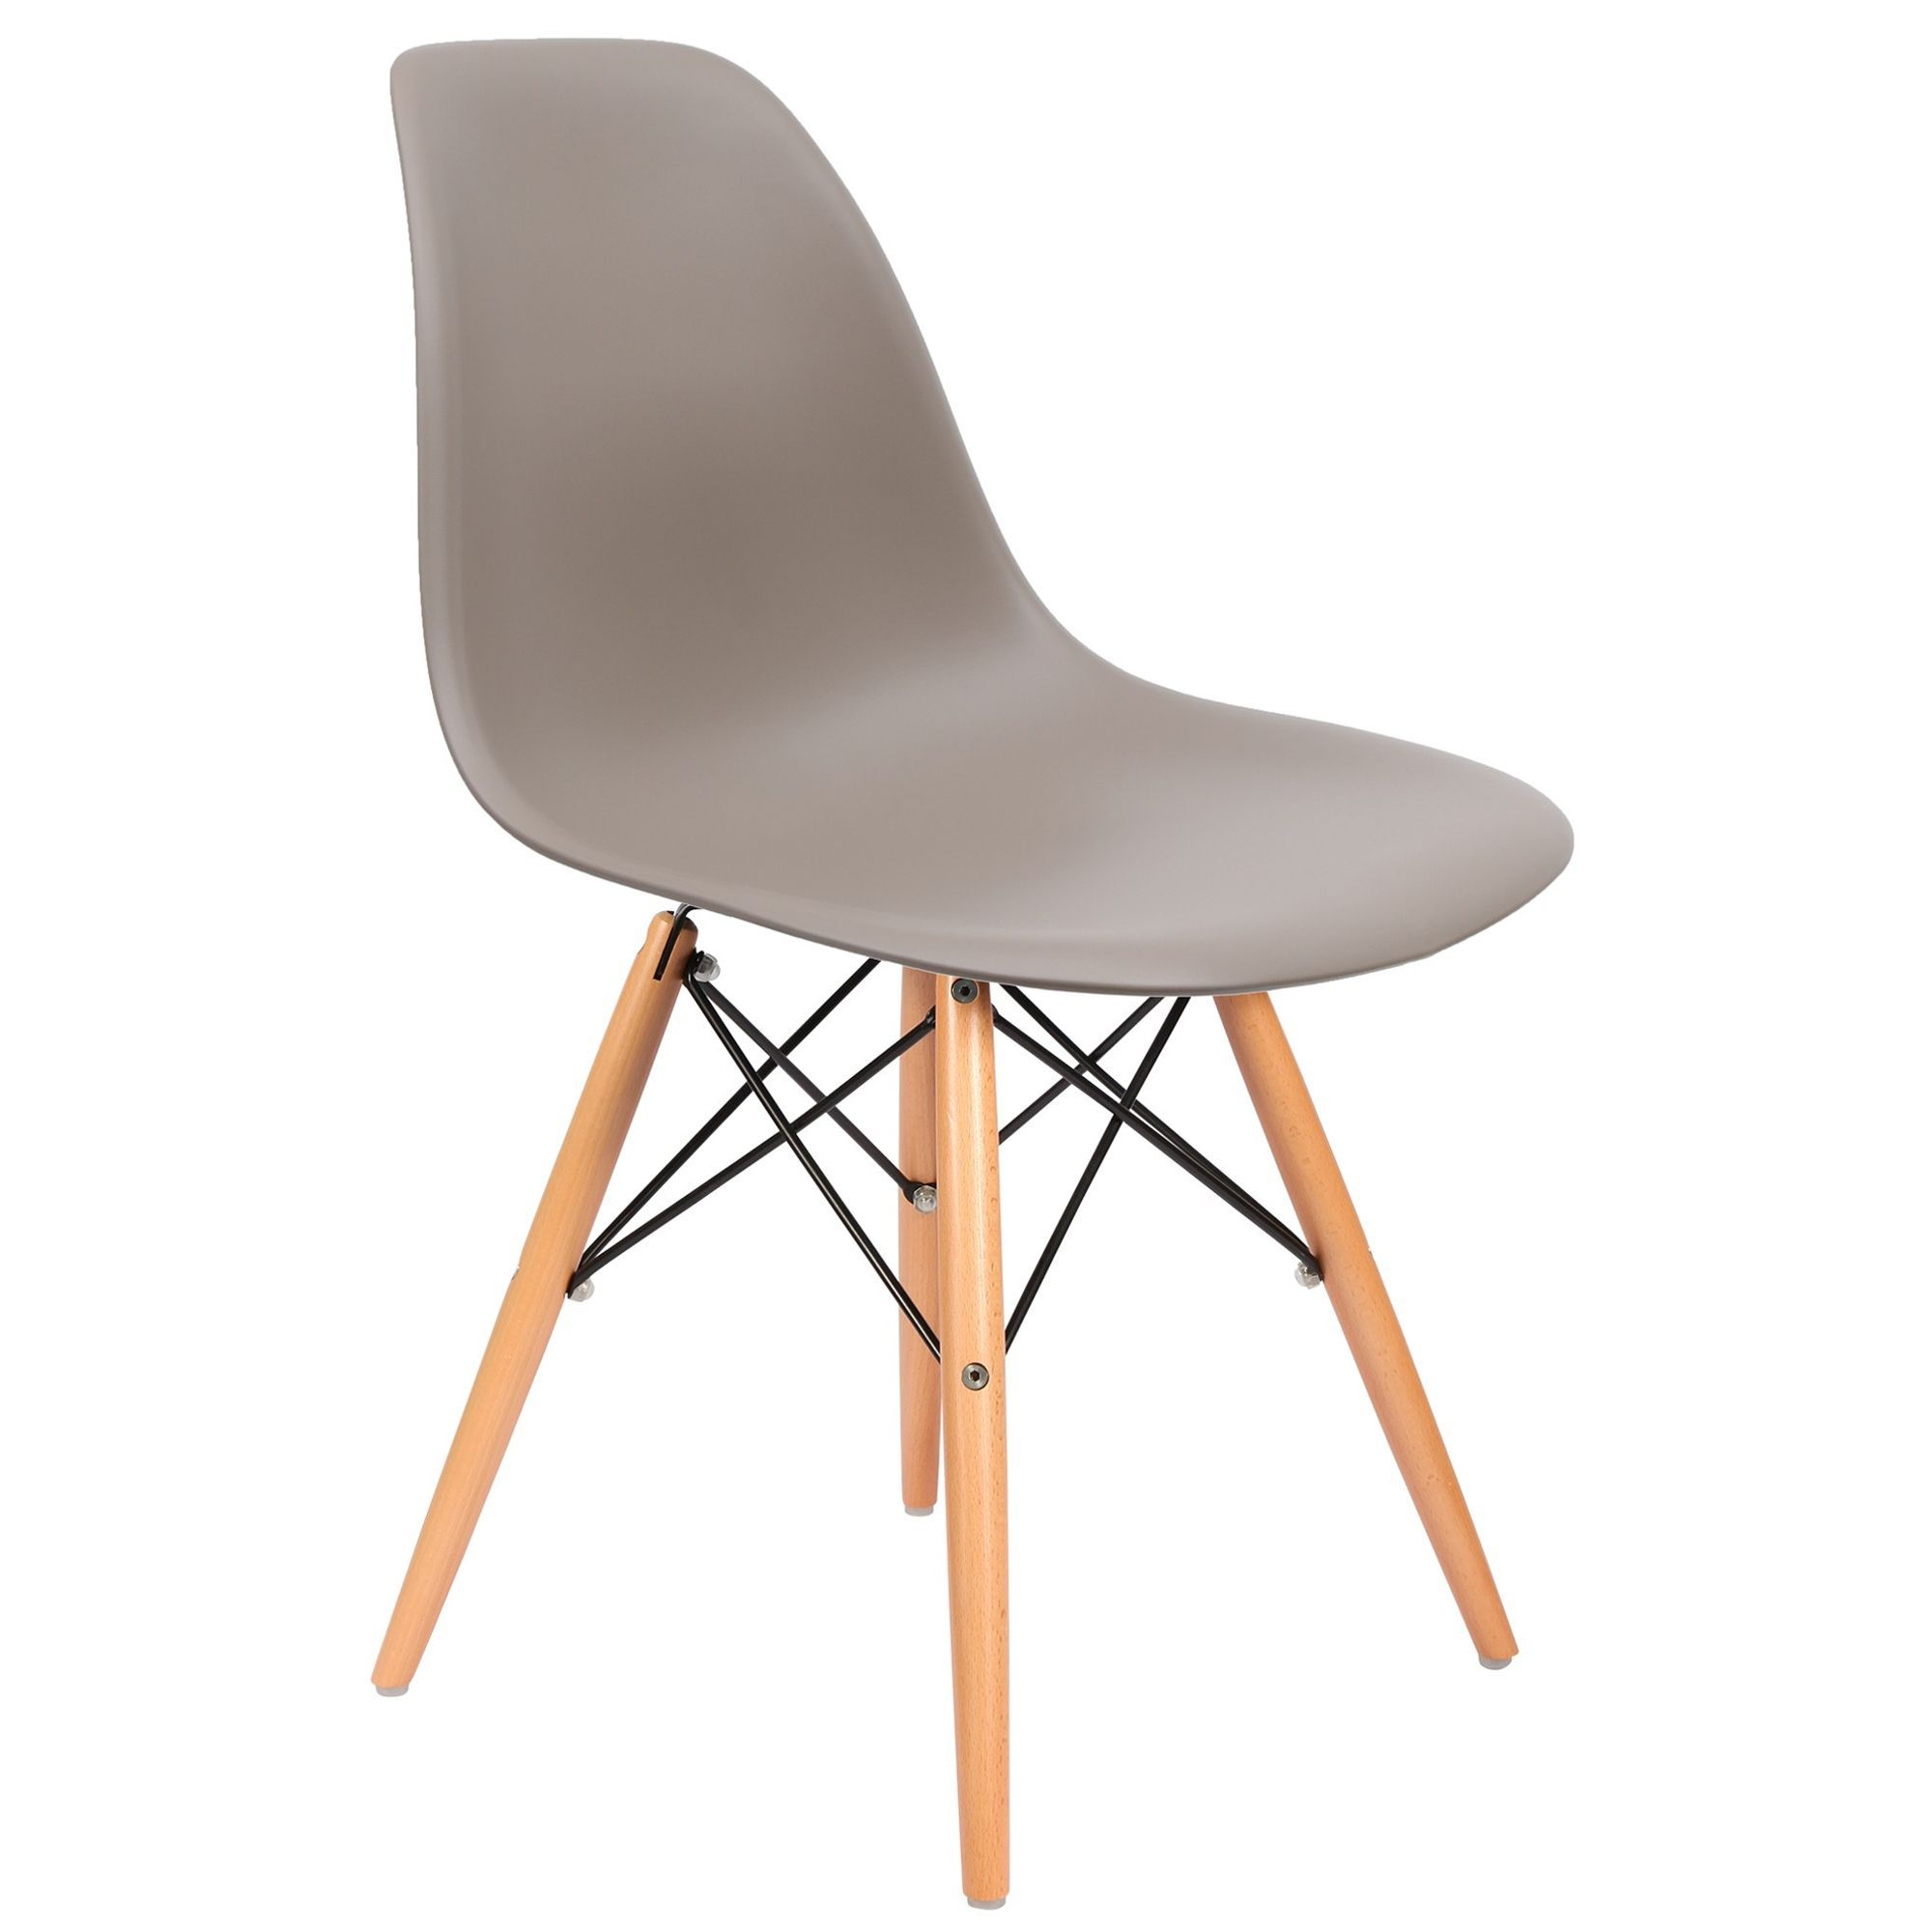 Chaise Dsw Eames Copie Imitation Chaise Dsw Chaise Eames Dsw Eames